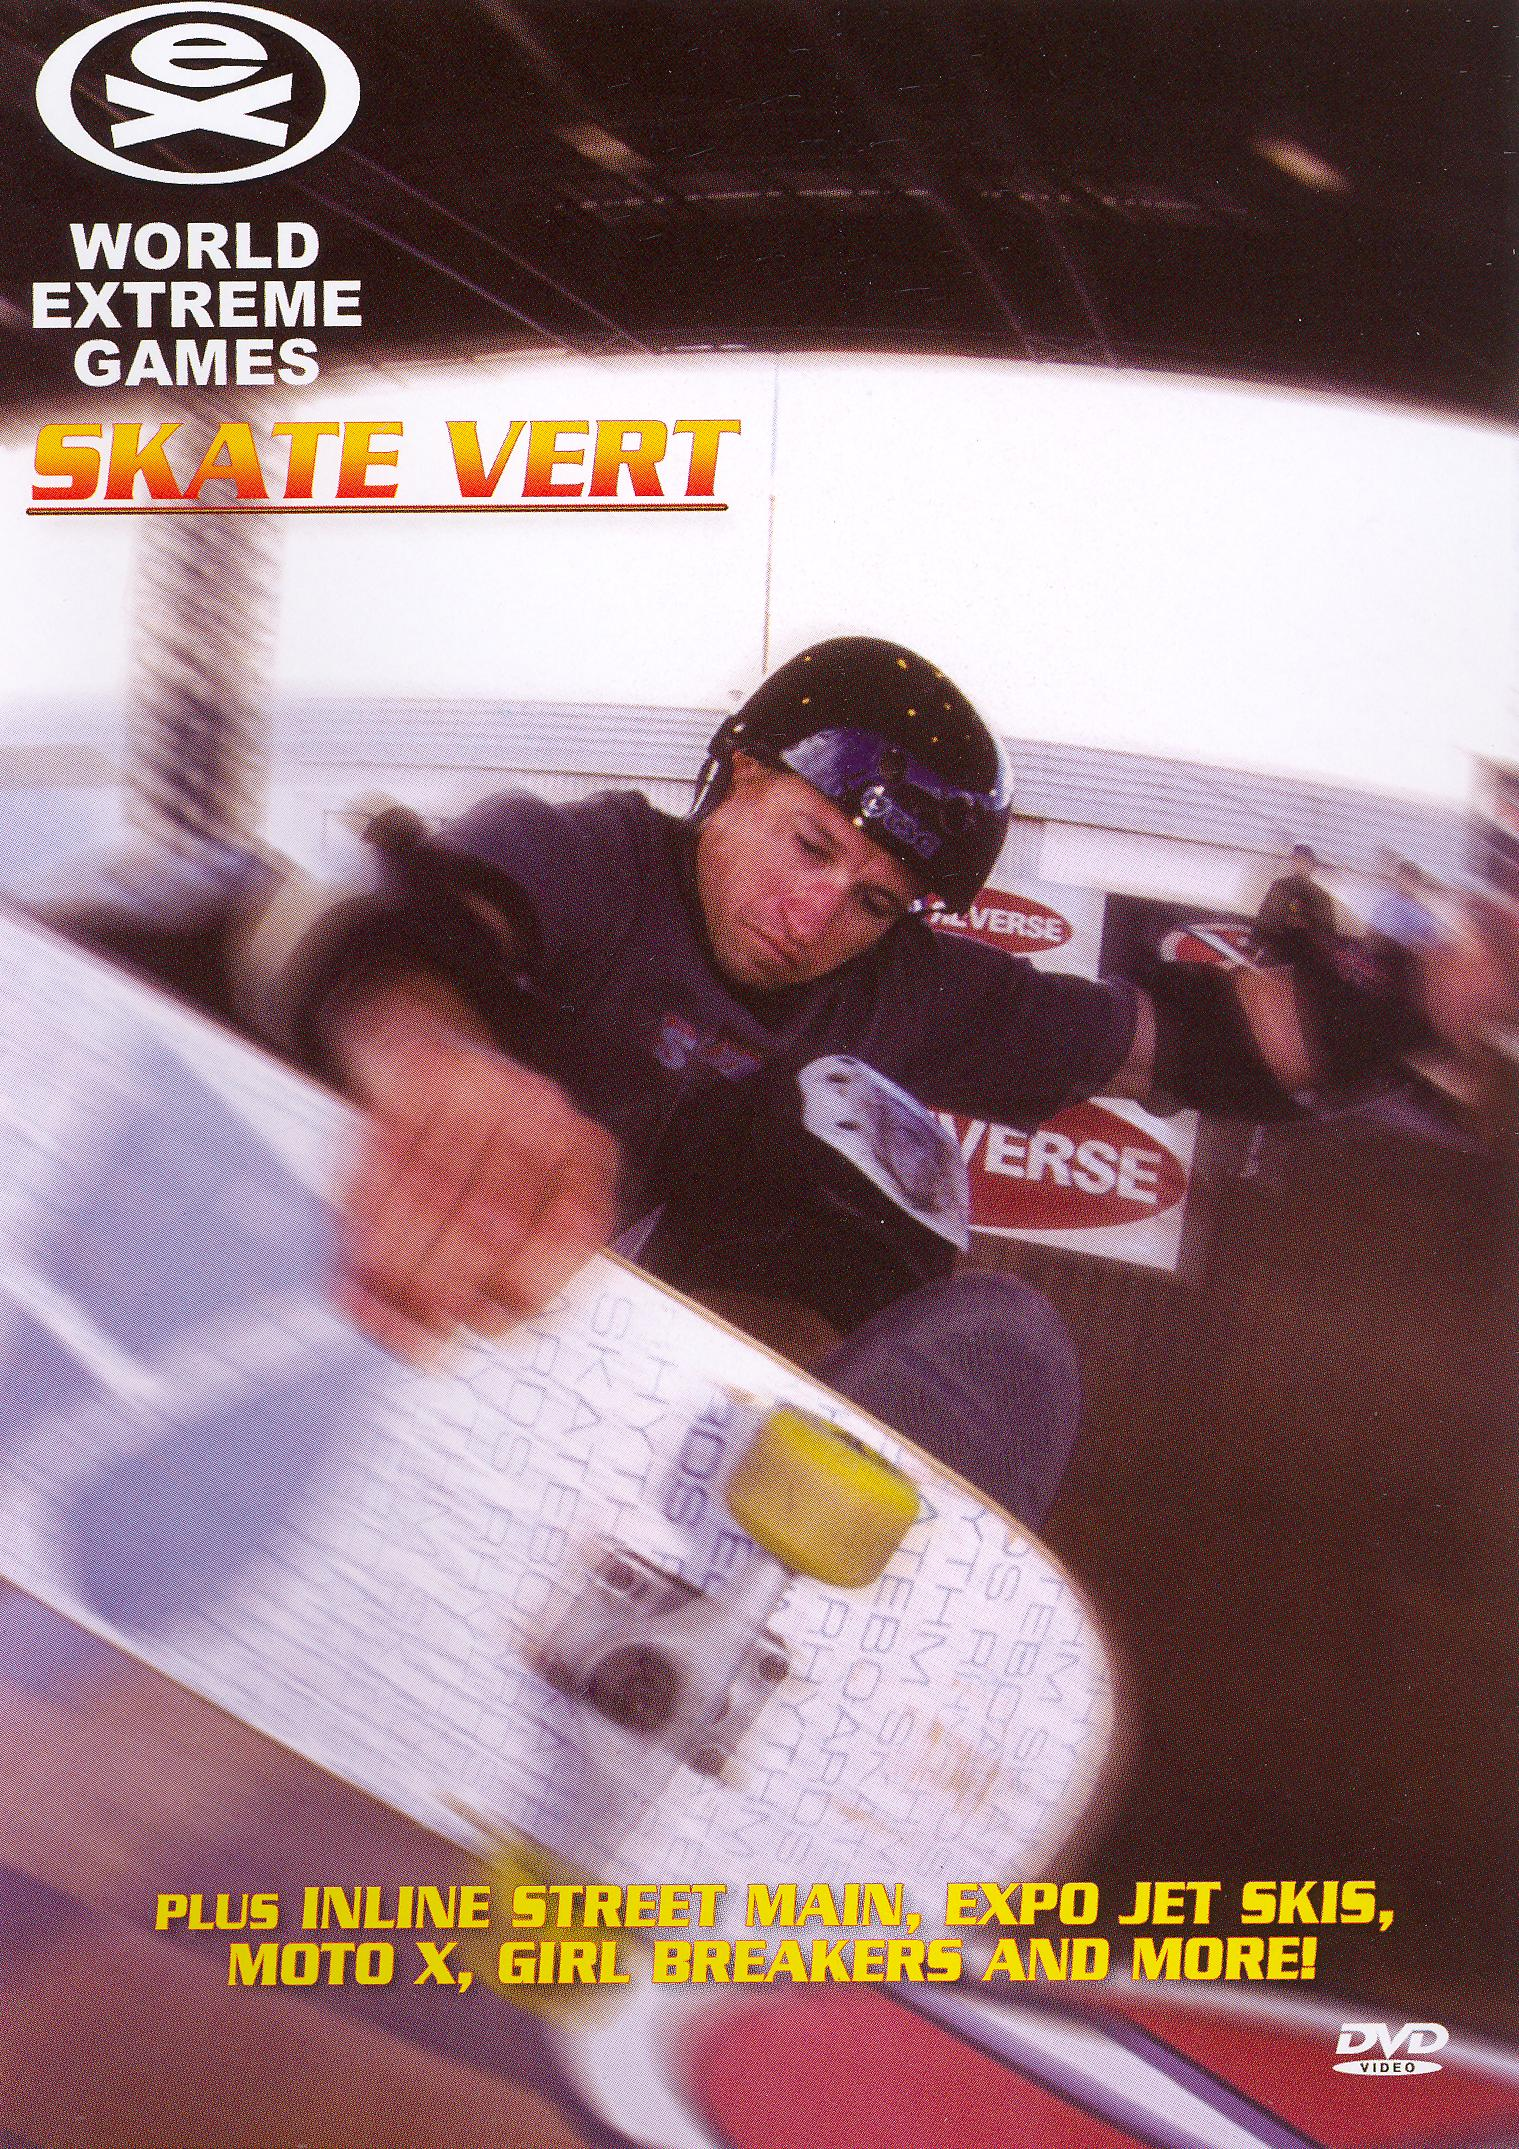 World Extreme Games, Vol. 2